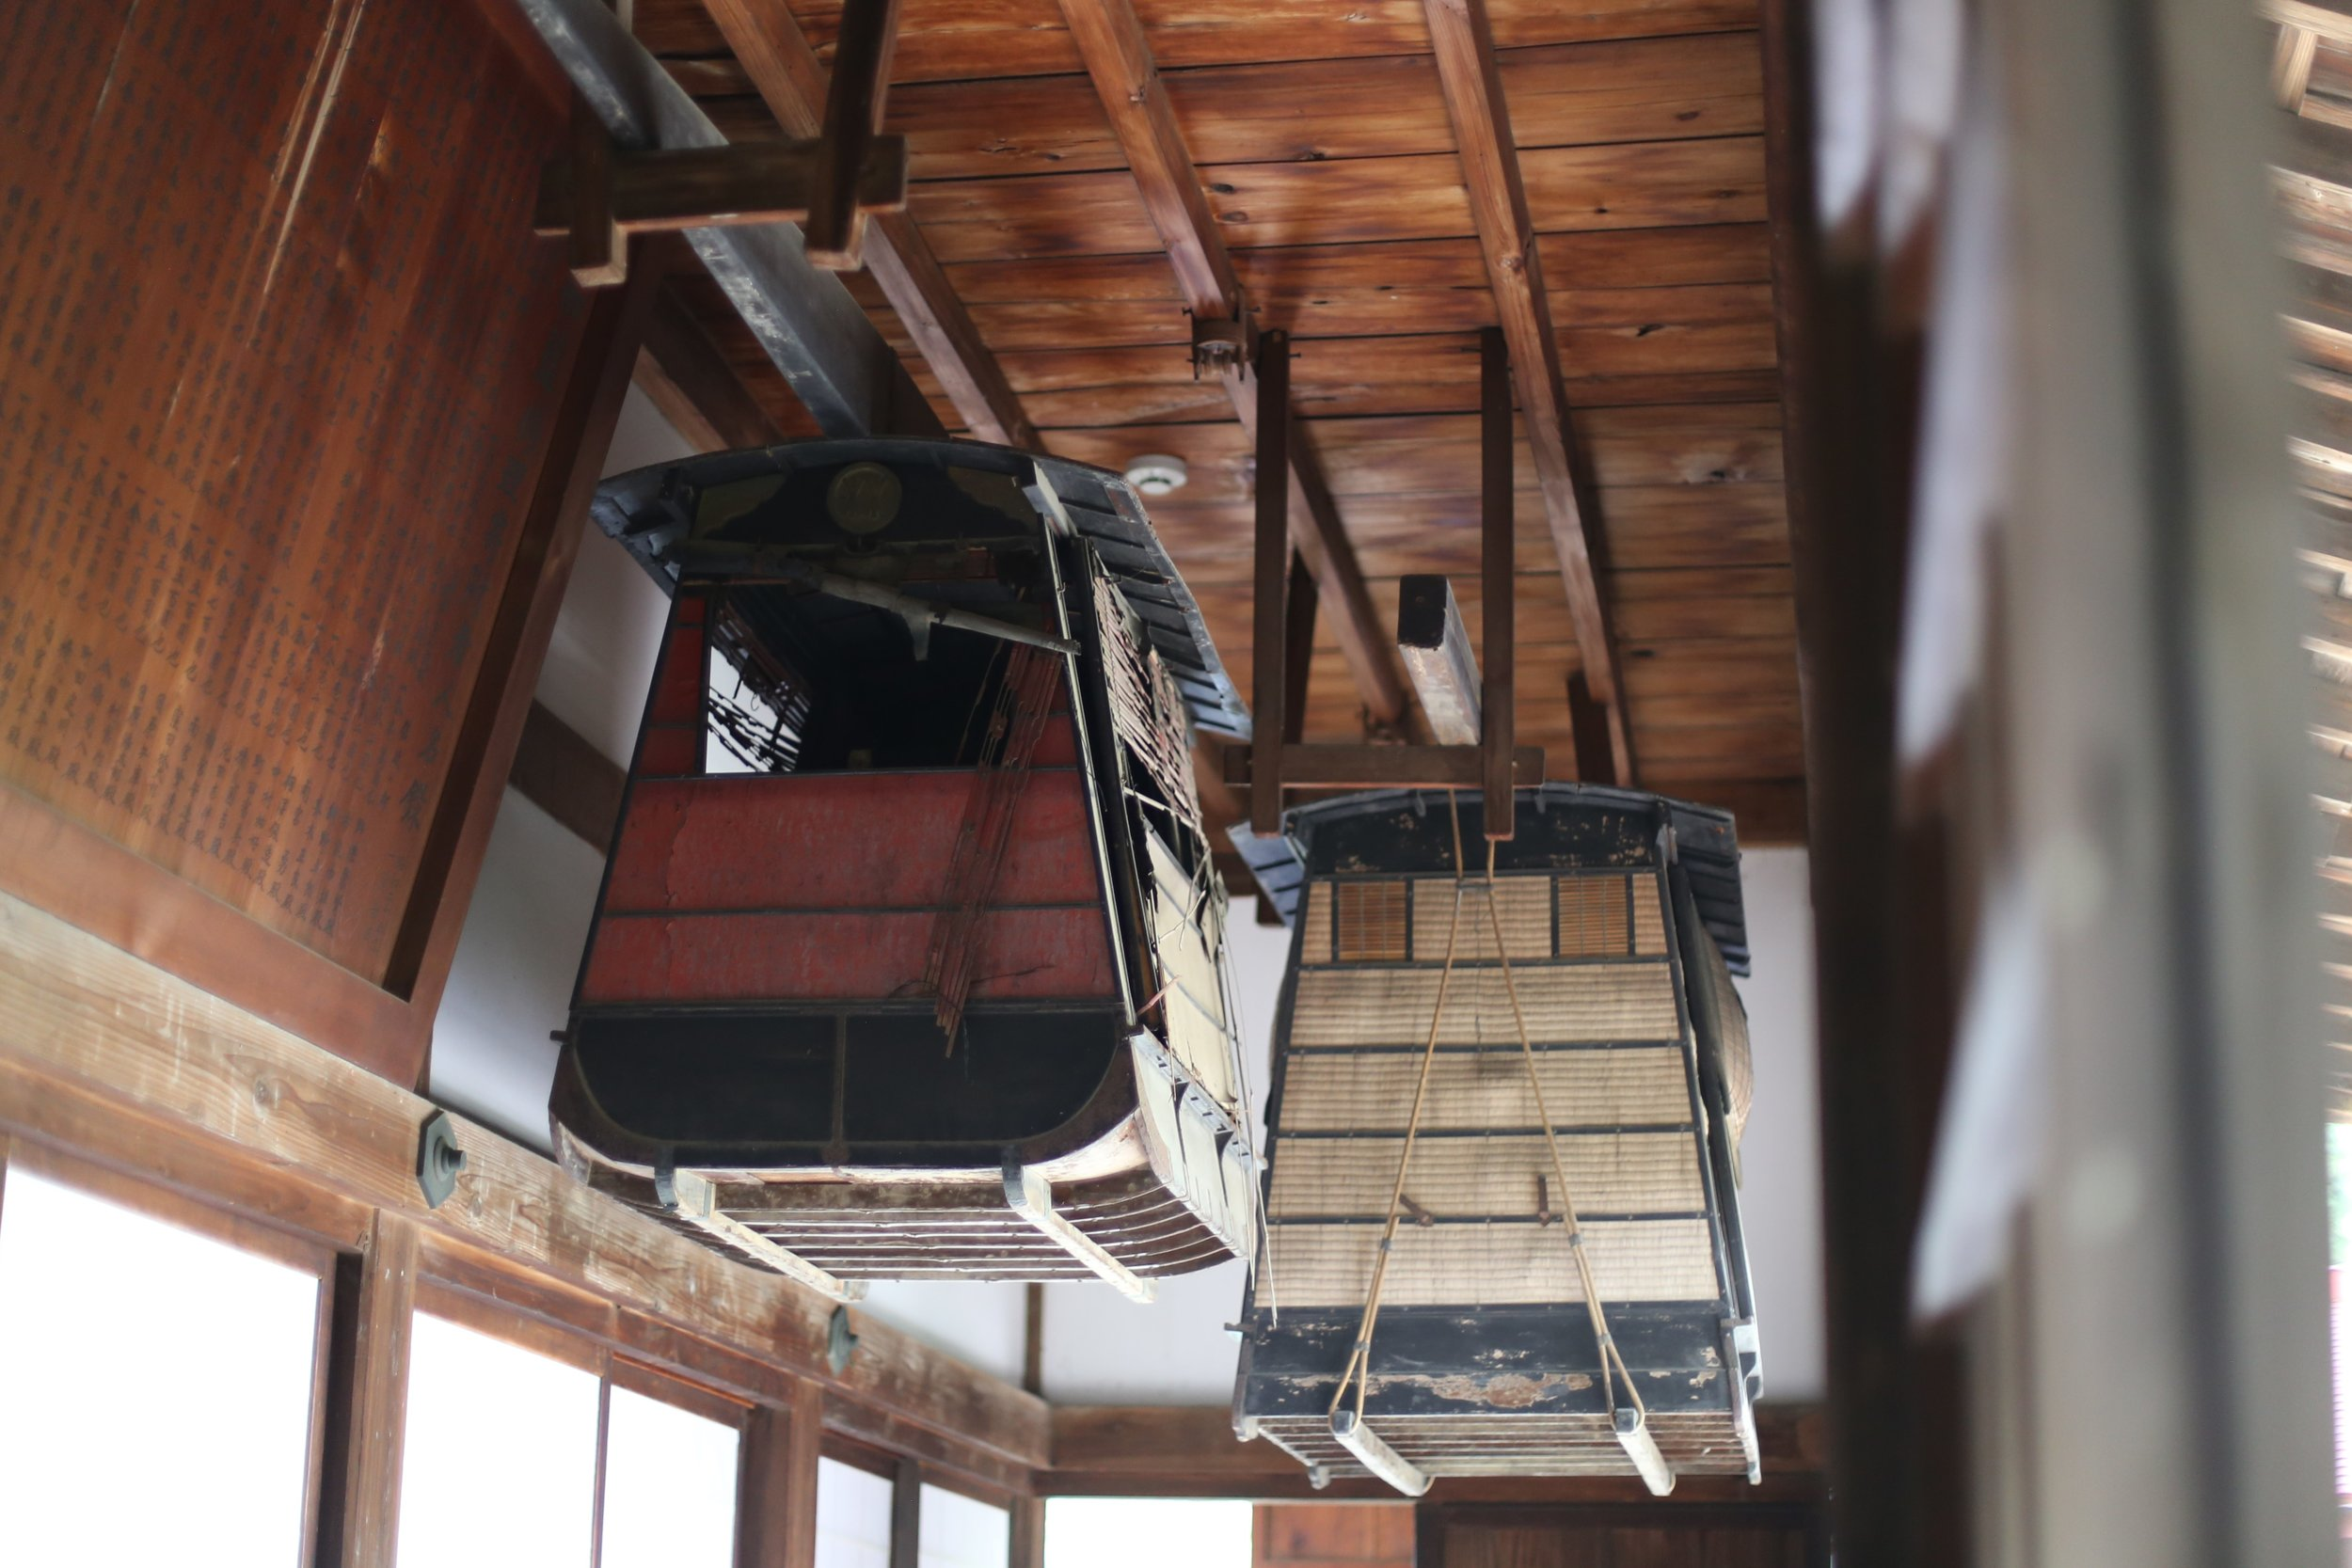 Carriages called  daimyo kago  used to carry Edo Period feudal lords on the  Koshu Kaido , seen here hanging in the Hokoji Temple in the north of the valley.